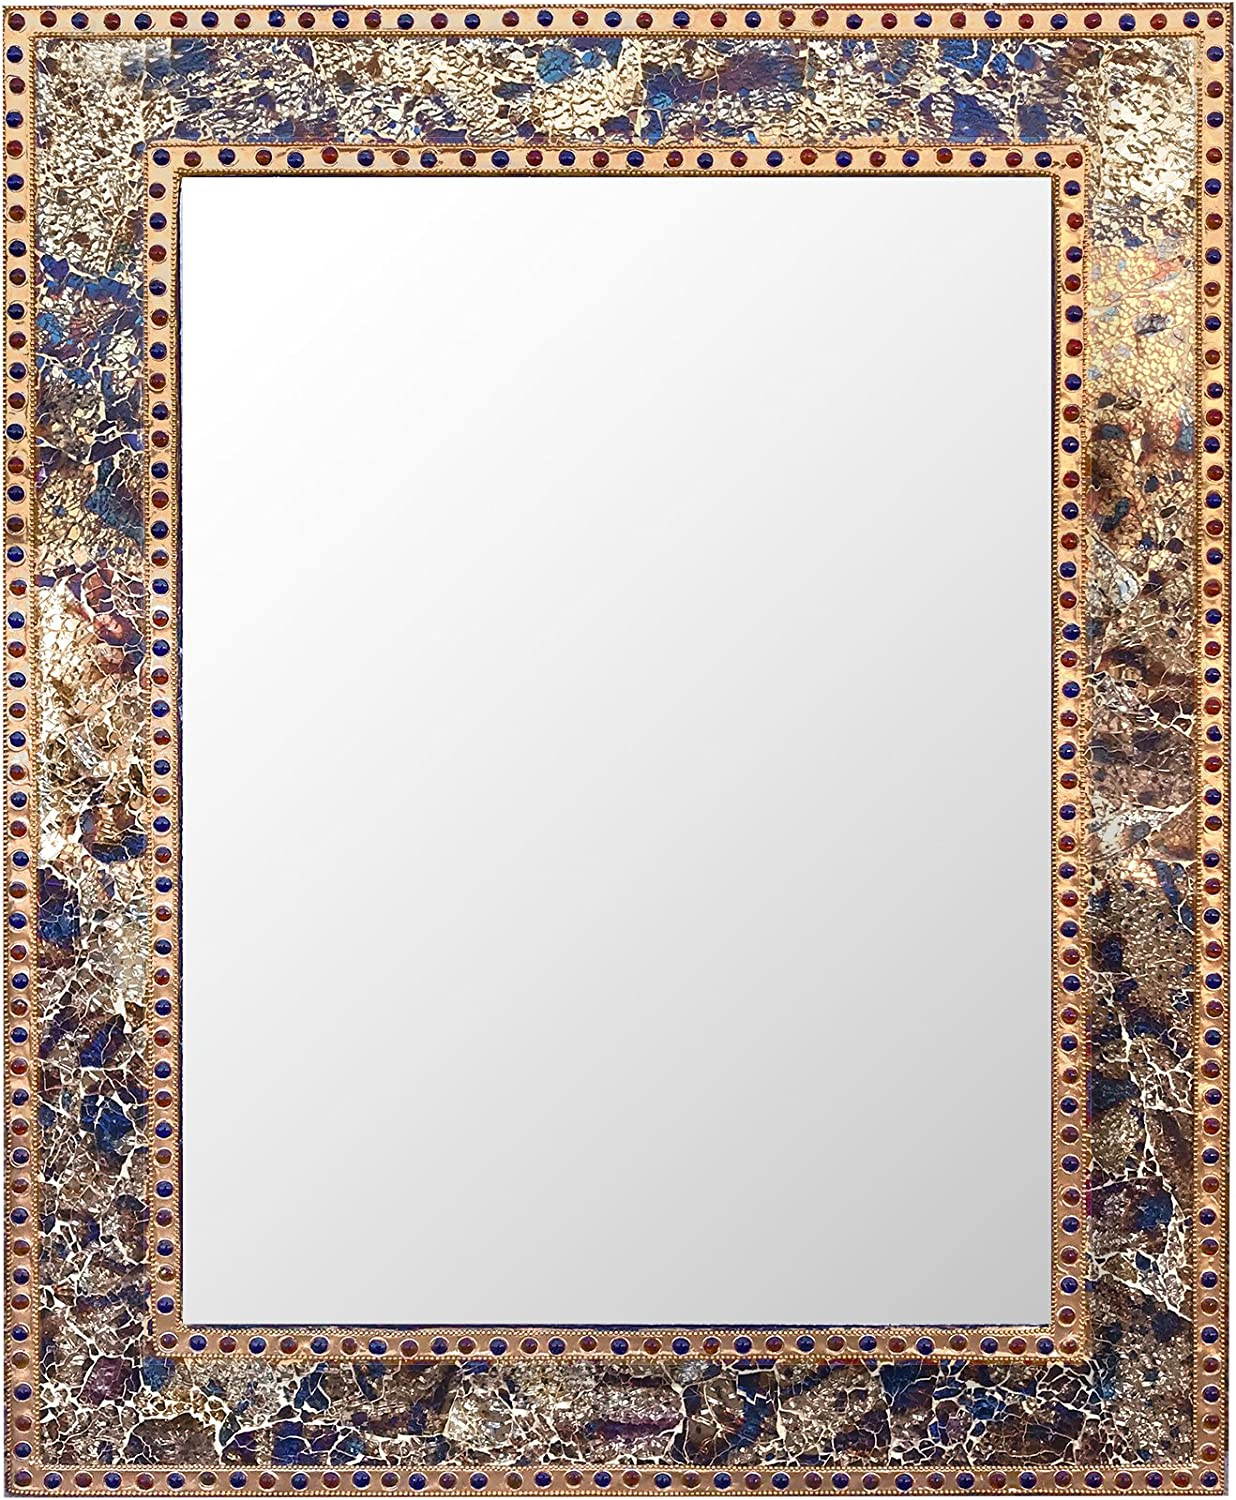 DecorShore Mosaic 30X24 Crackled Glass Decorative Wall Mirror, Fired Gold